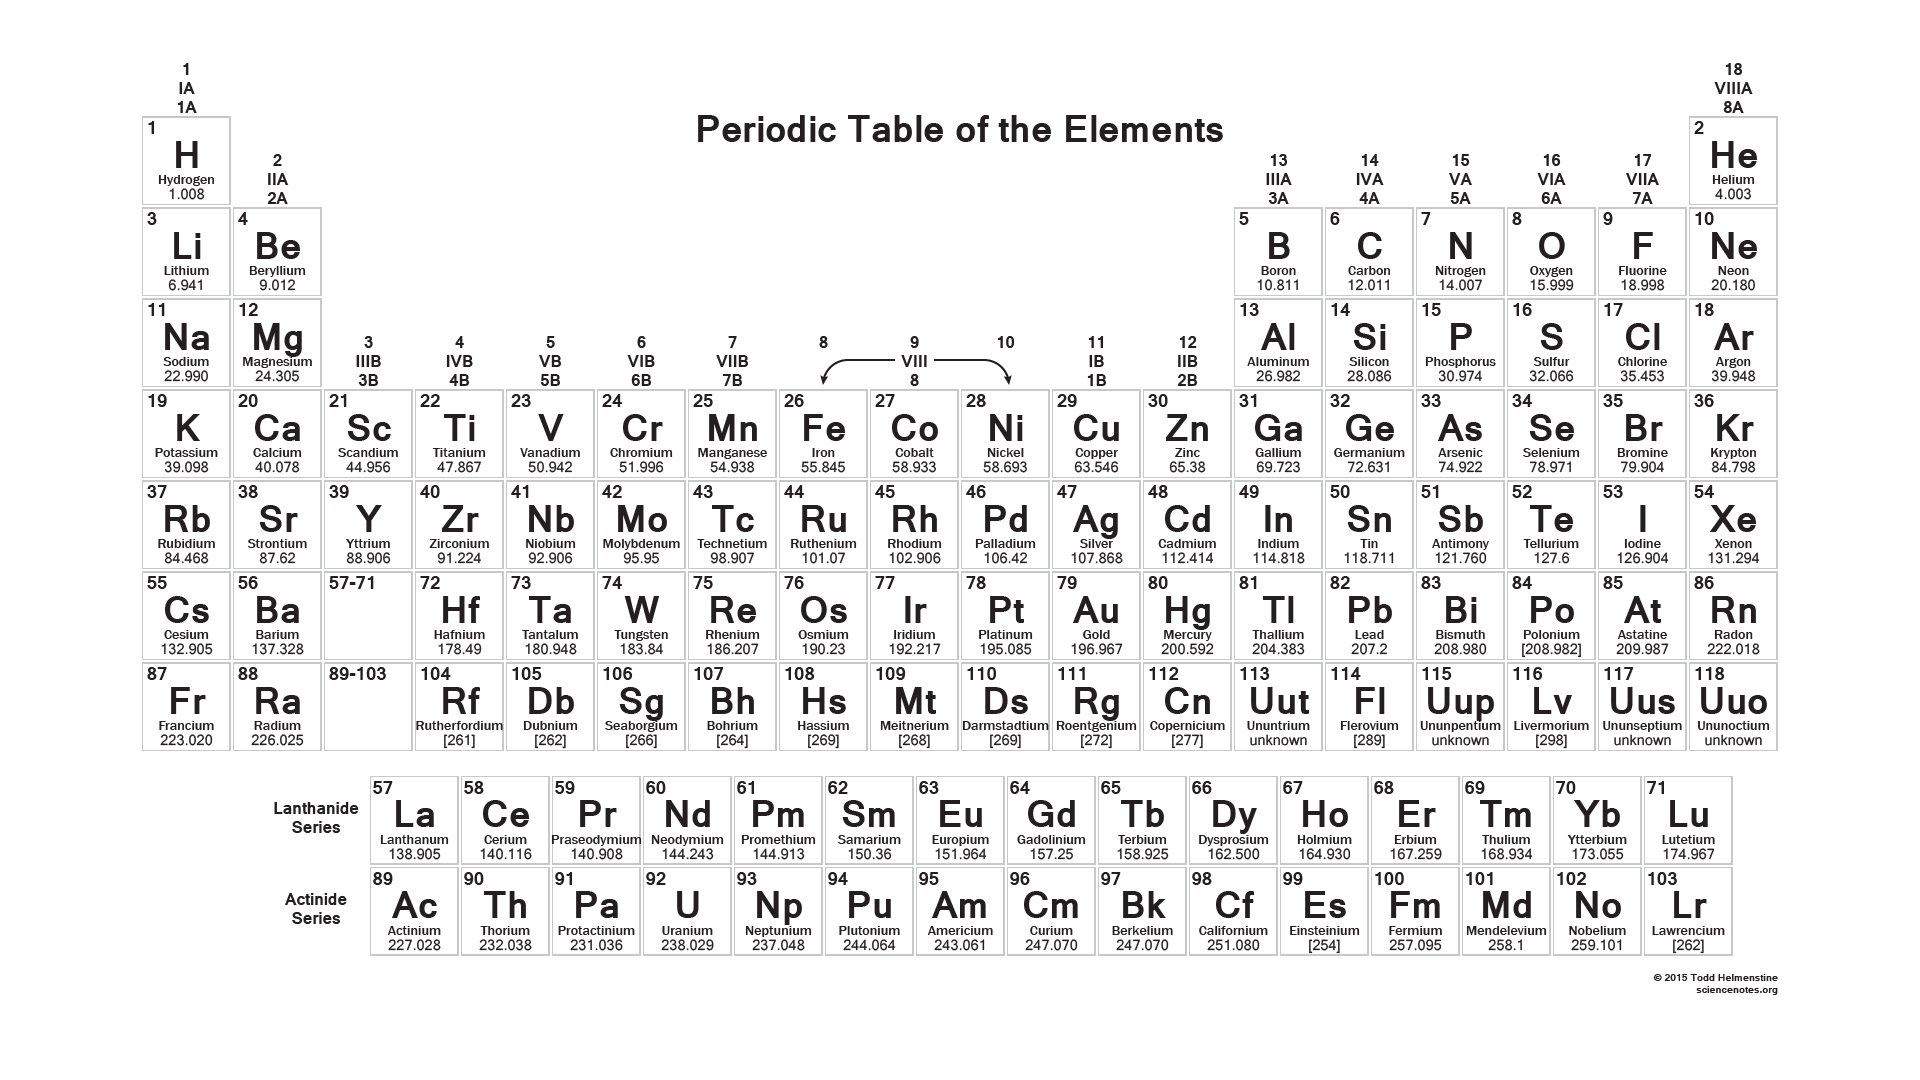 Blank periodic table of elements worksheet free worksheets library fill in the blank periodic table worksheet templates and worksheets gamestrikefo Images